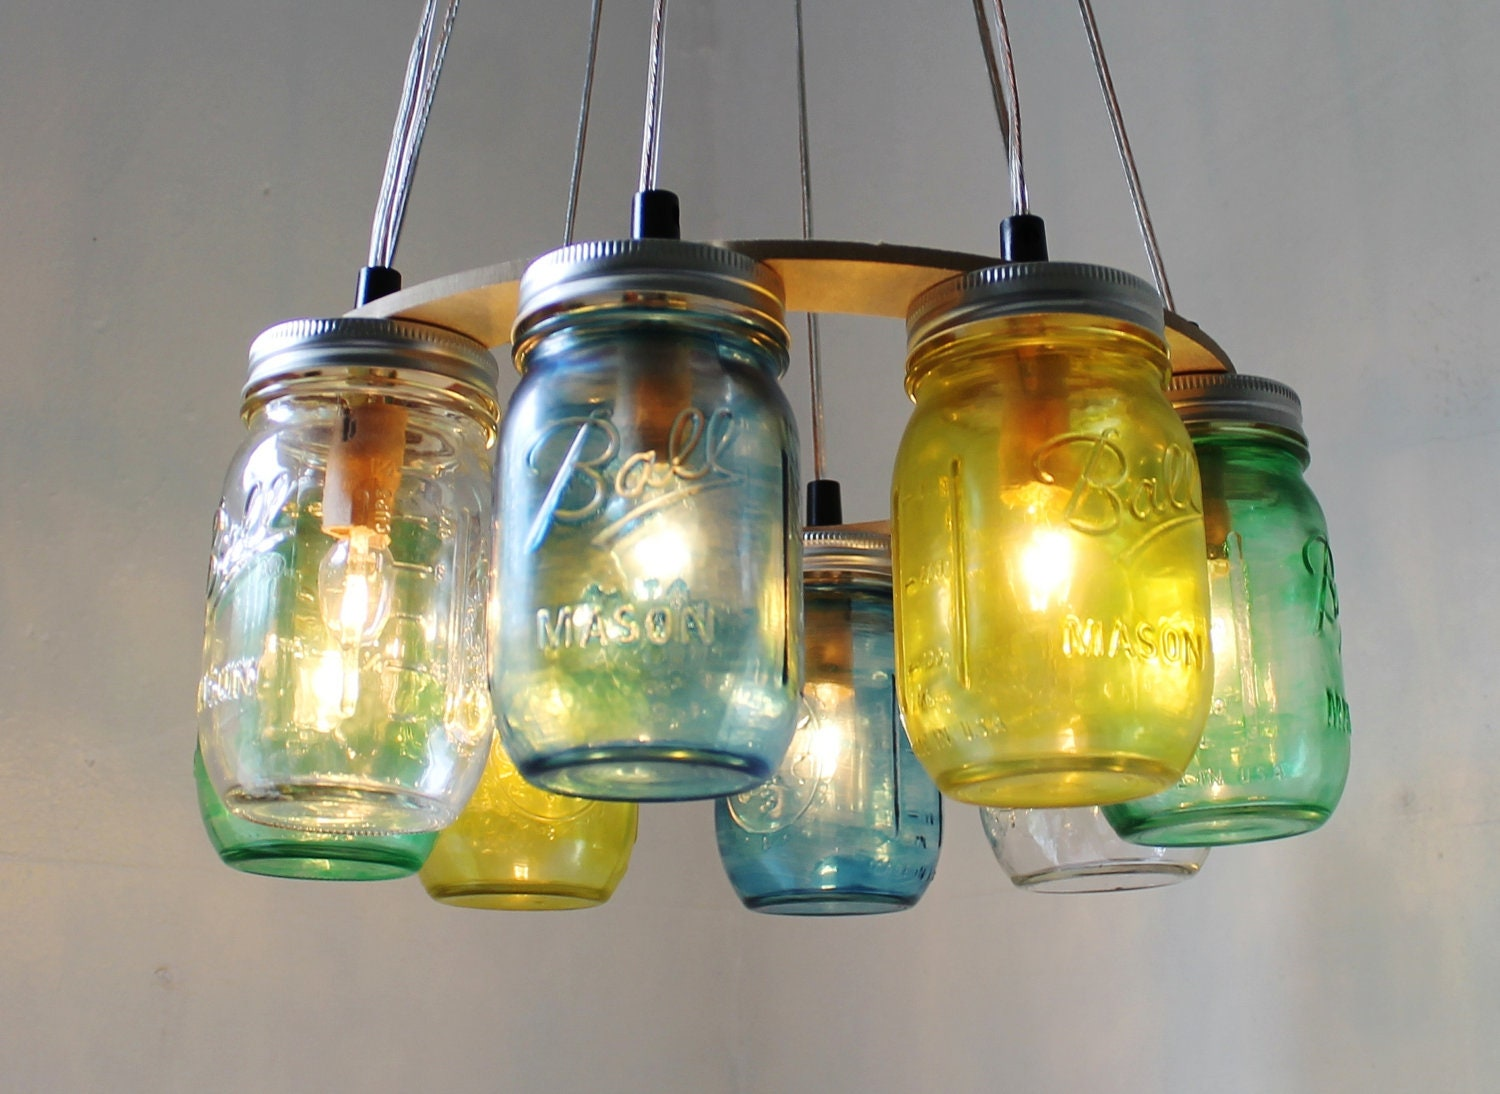 mason jar lighting fixtures mason jar pendant lighting fixture rustic bootsngus zoom build diy mason jar chandelier